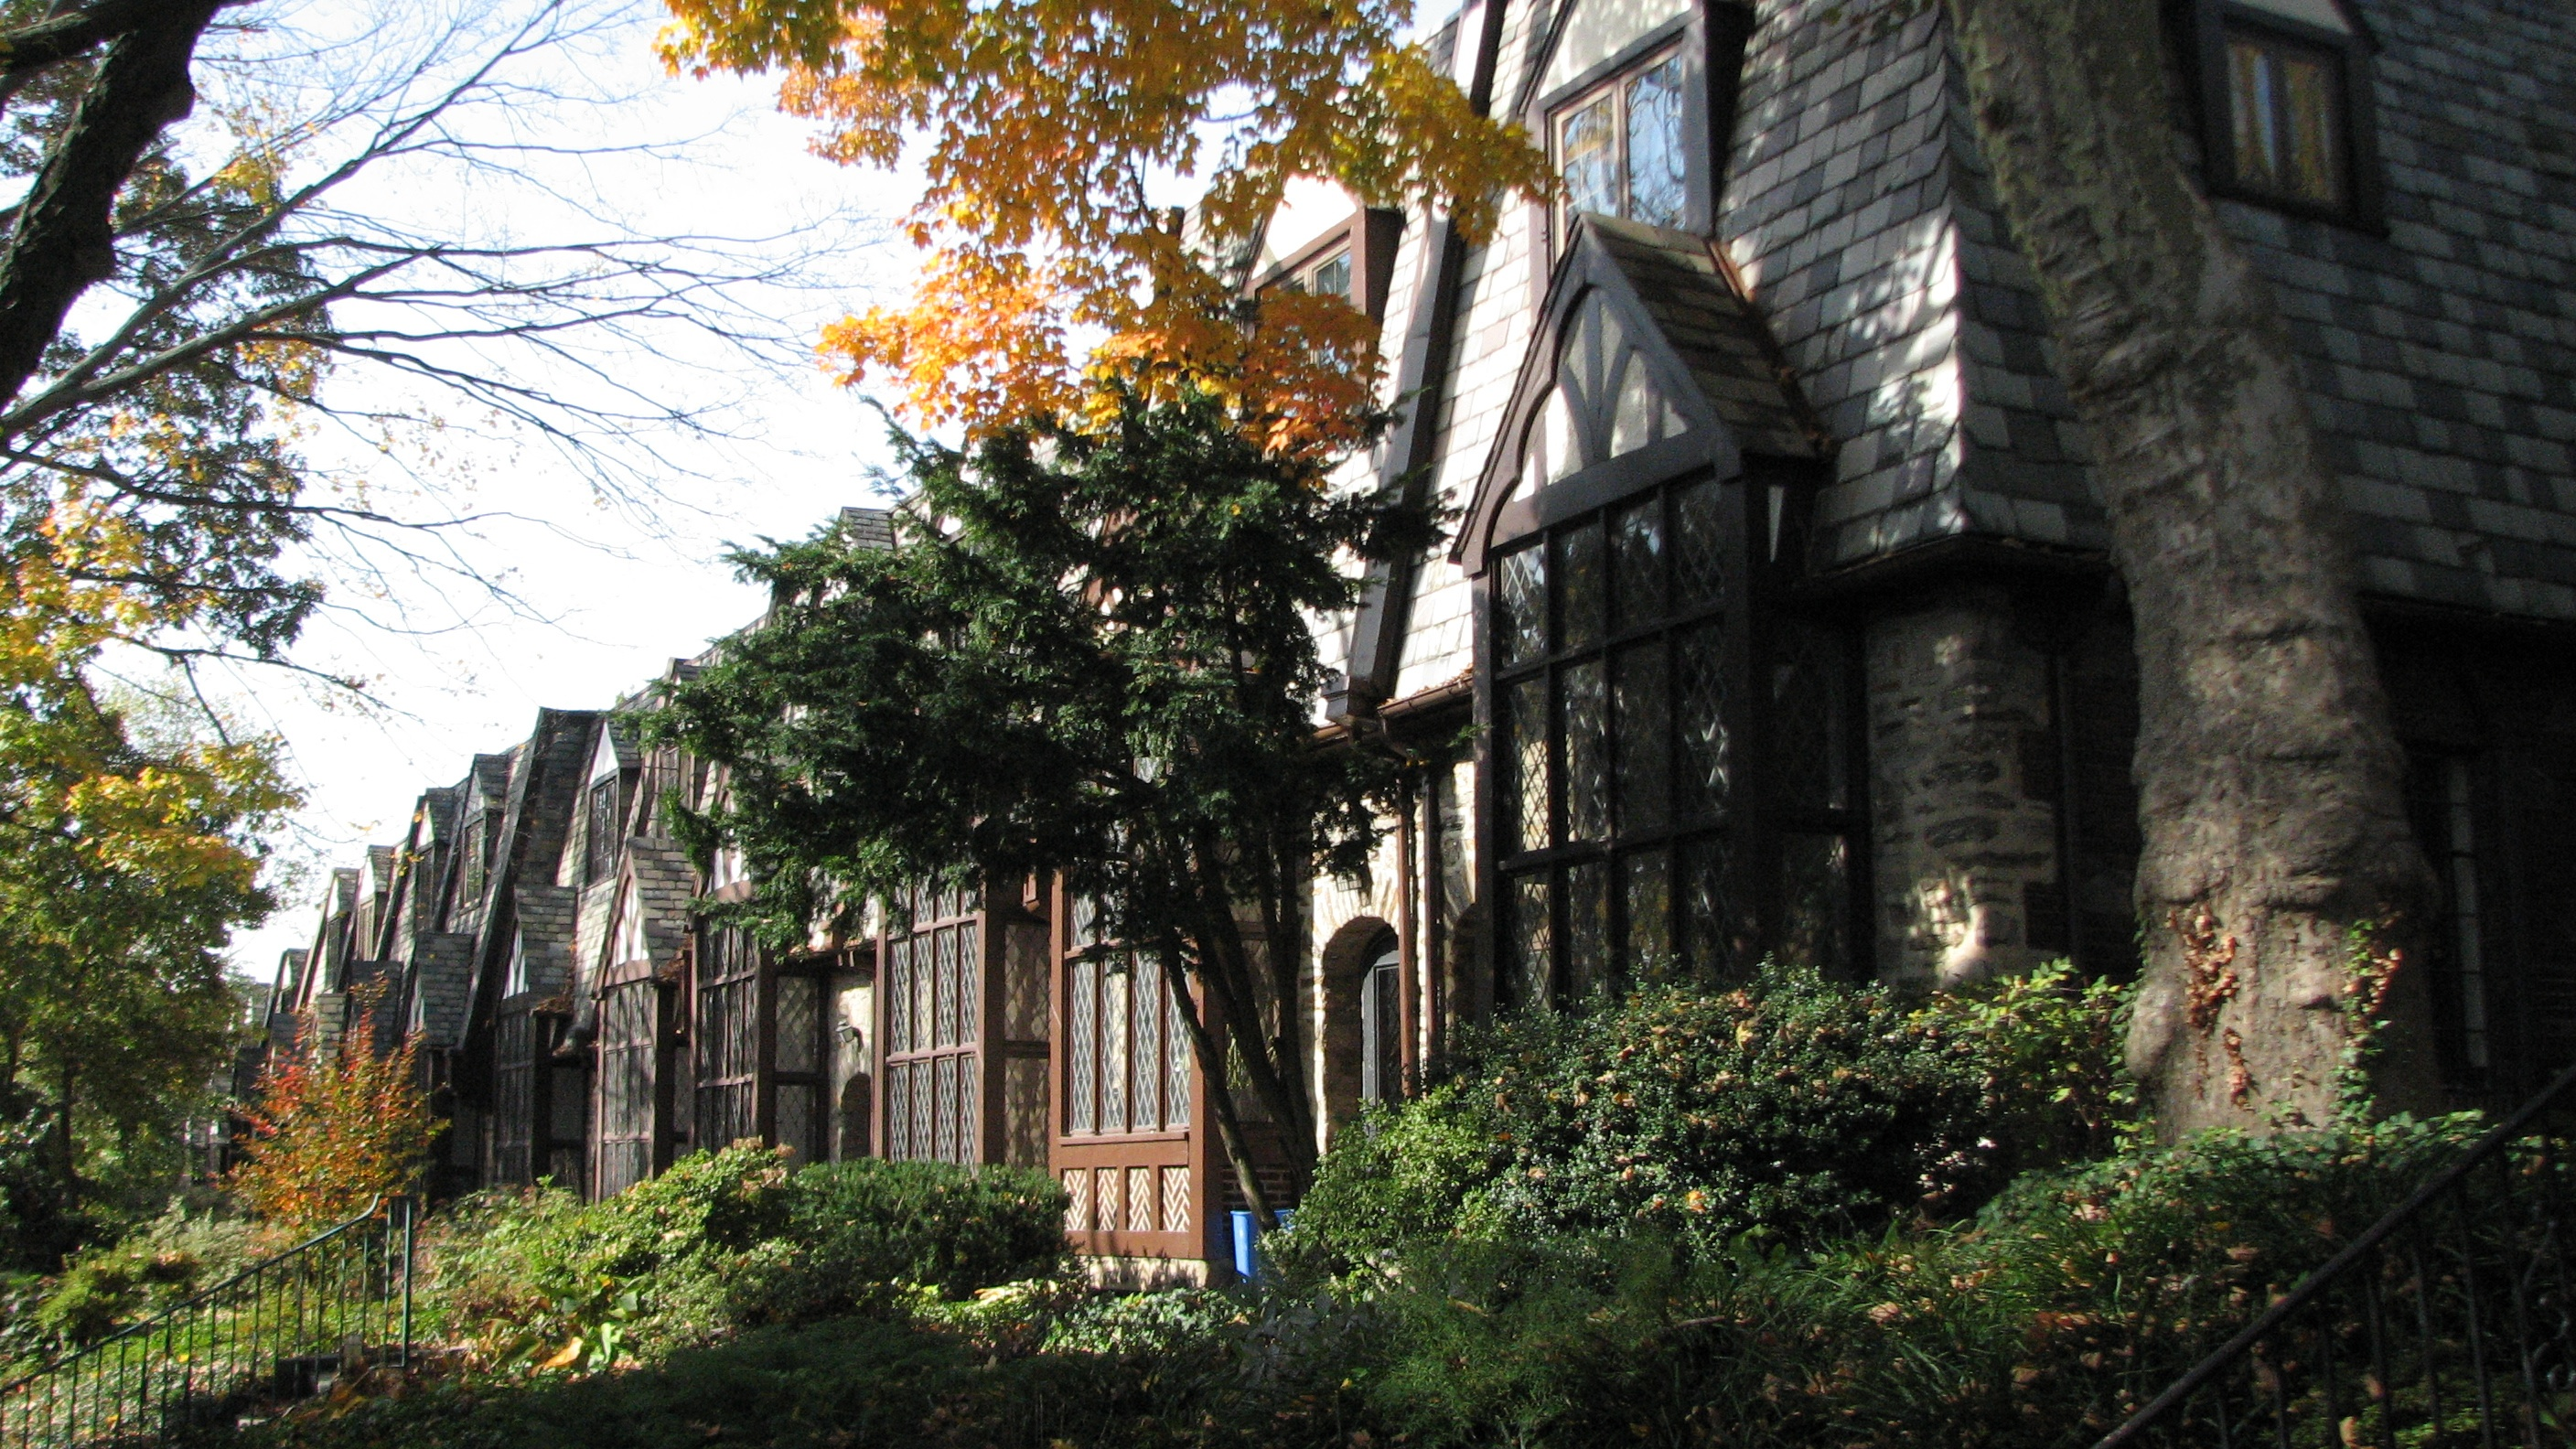 Row houses built in the Tudor Revival style lend East Falls' main thoroughfare its distinctive character.